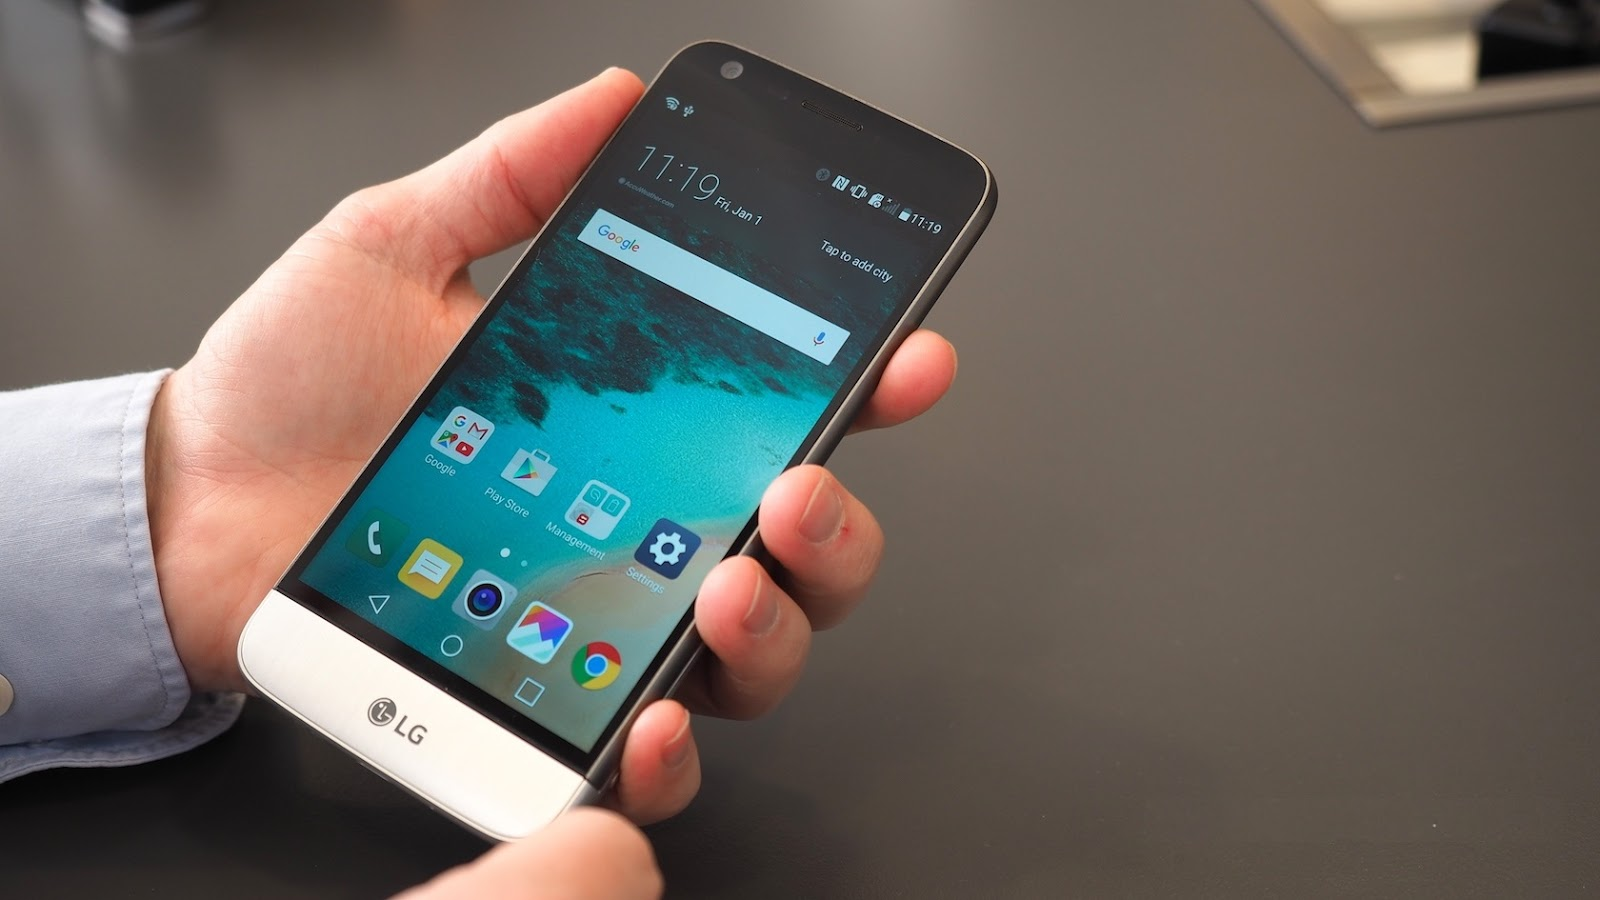 Lg Announces 360 Degree Wallpapers For The Lg G5: Details - Technonize Media